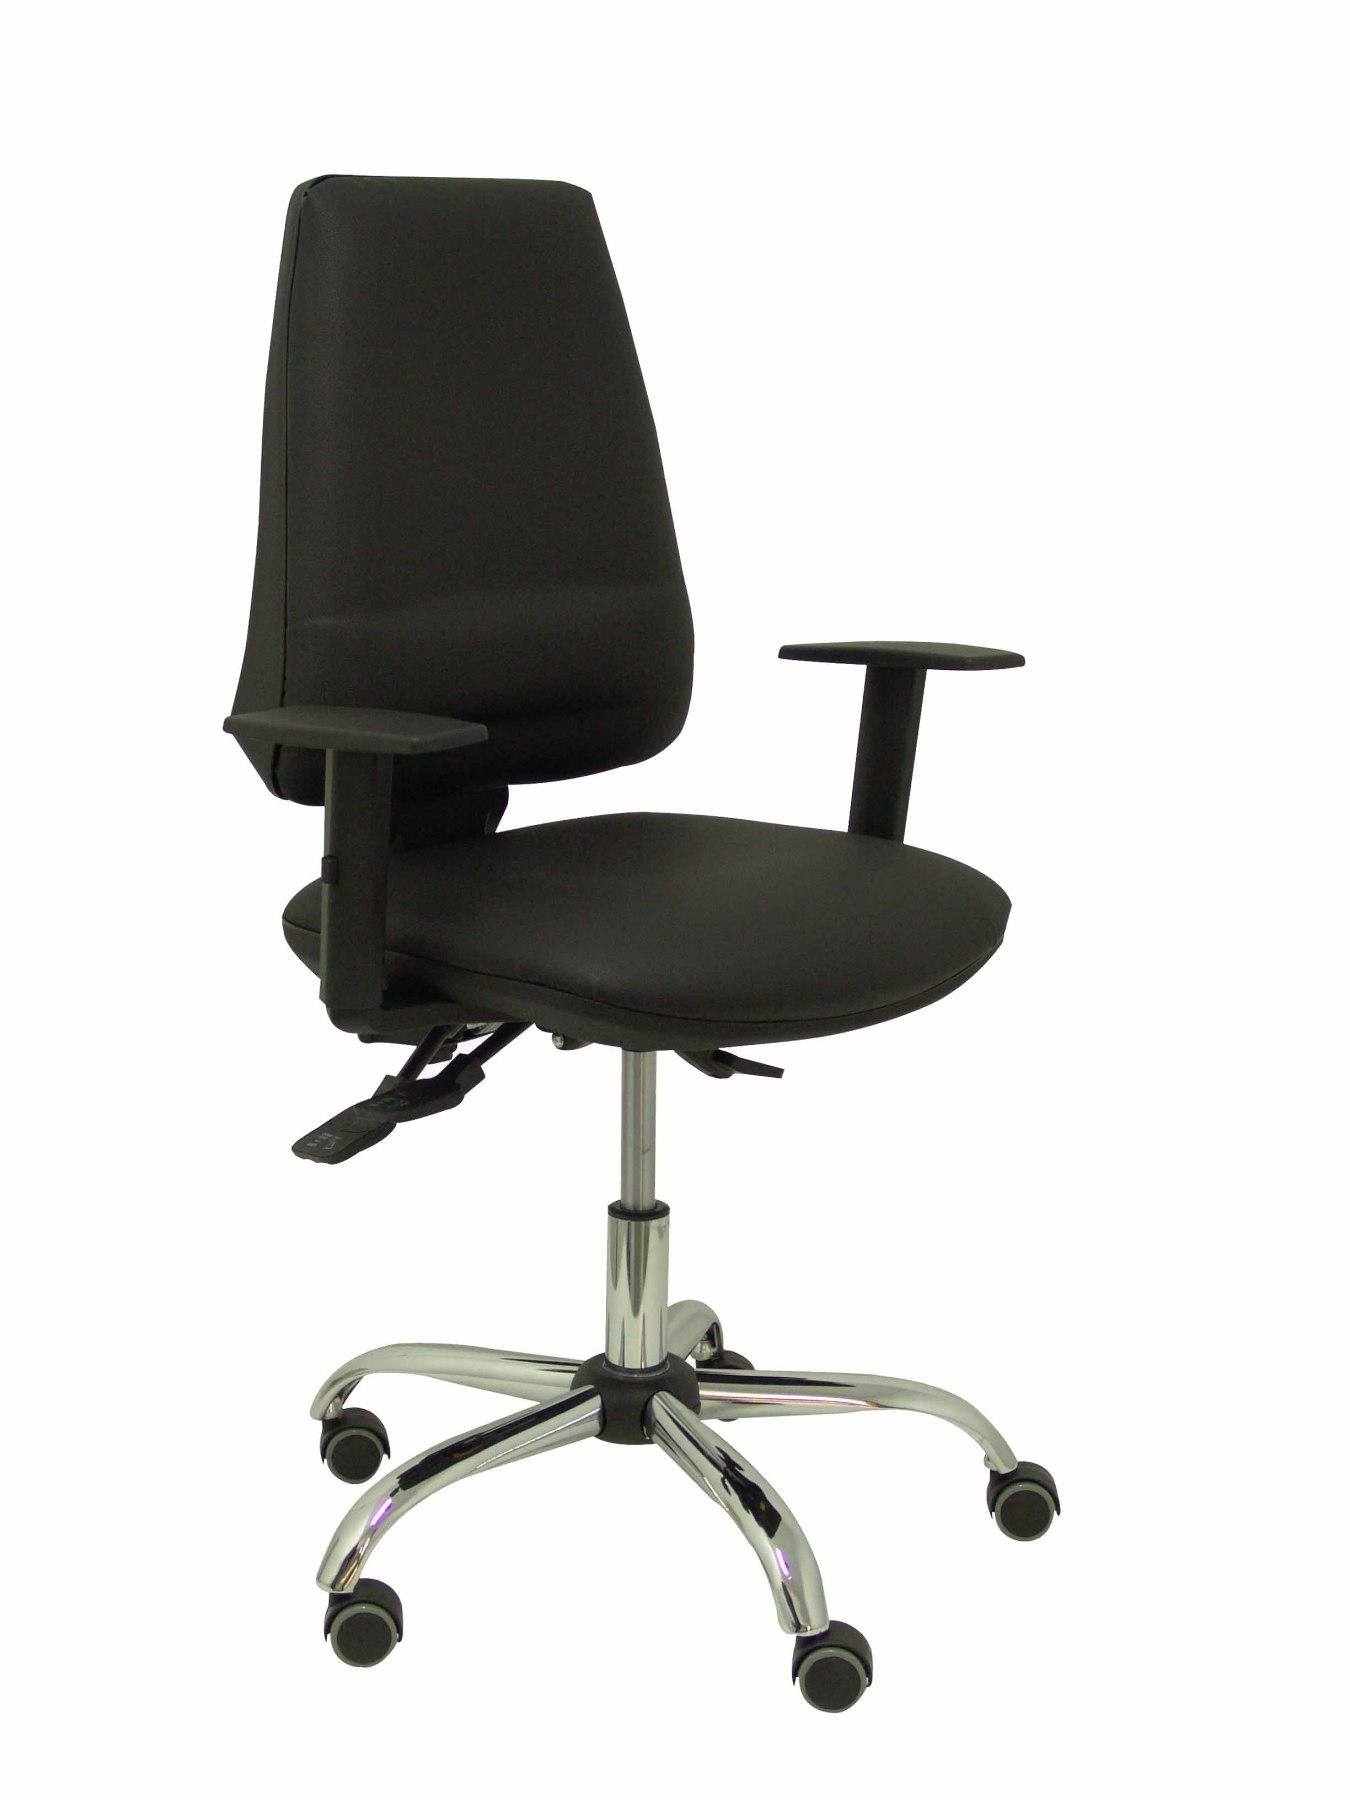 Ergonomic Office Chair With Mechanism Asincro And Adjustable Height-Seat And Backrest Cushion Fabric Similp